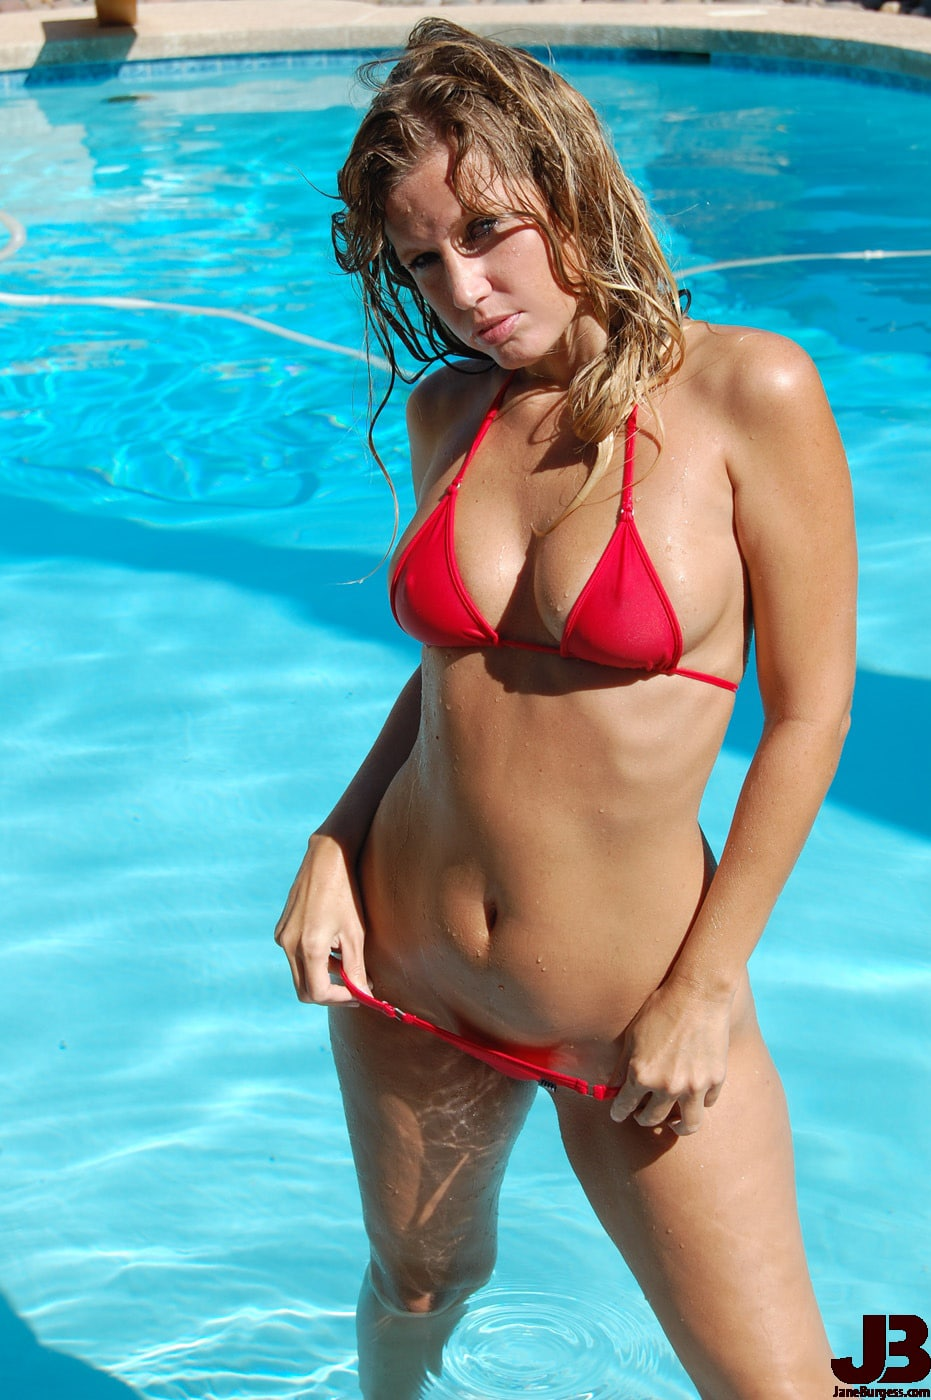 JaneBurgess Sexy Swimming Picture 2